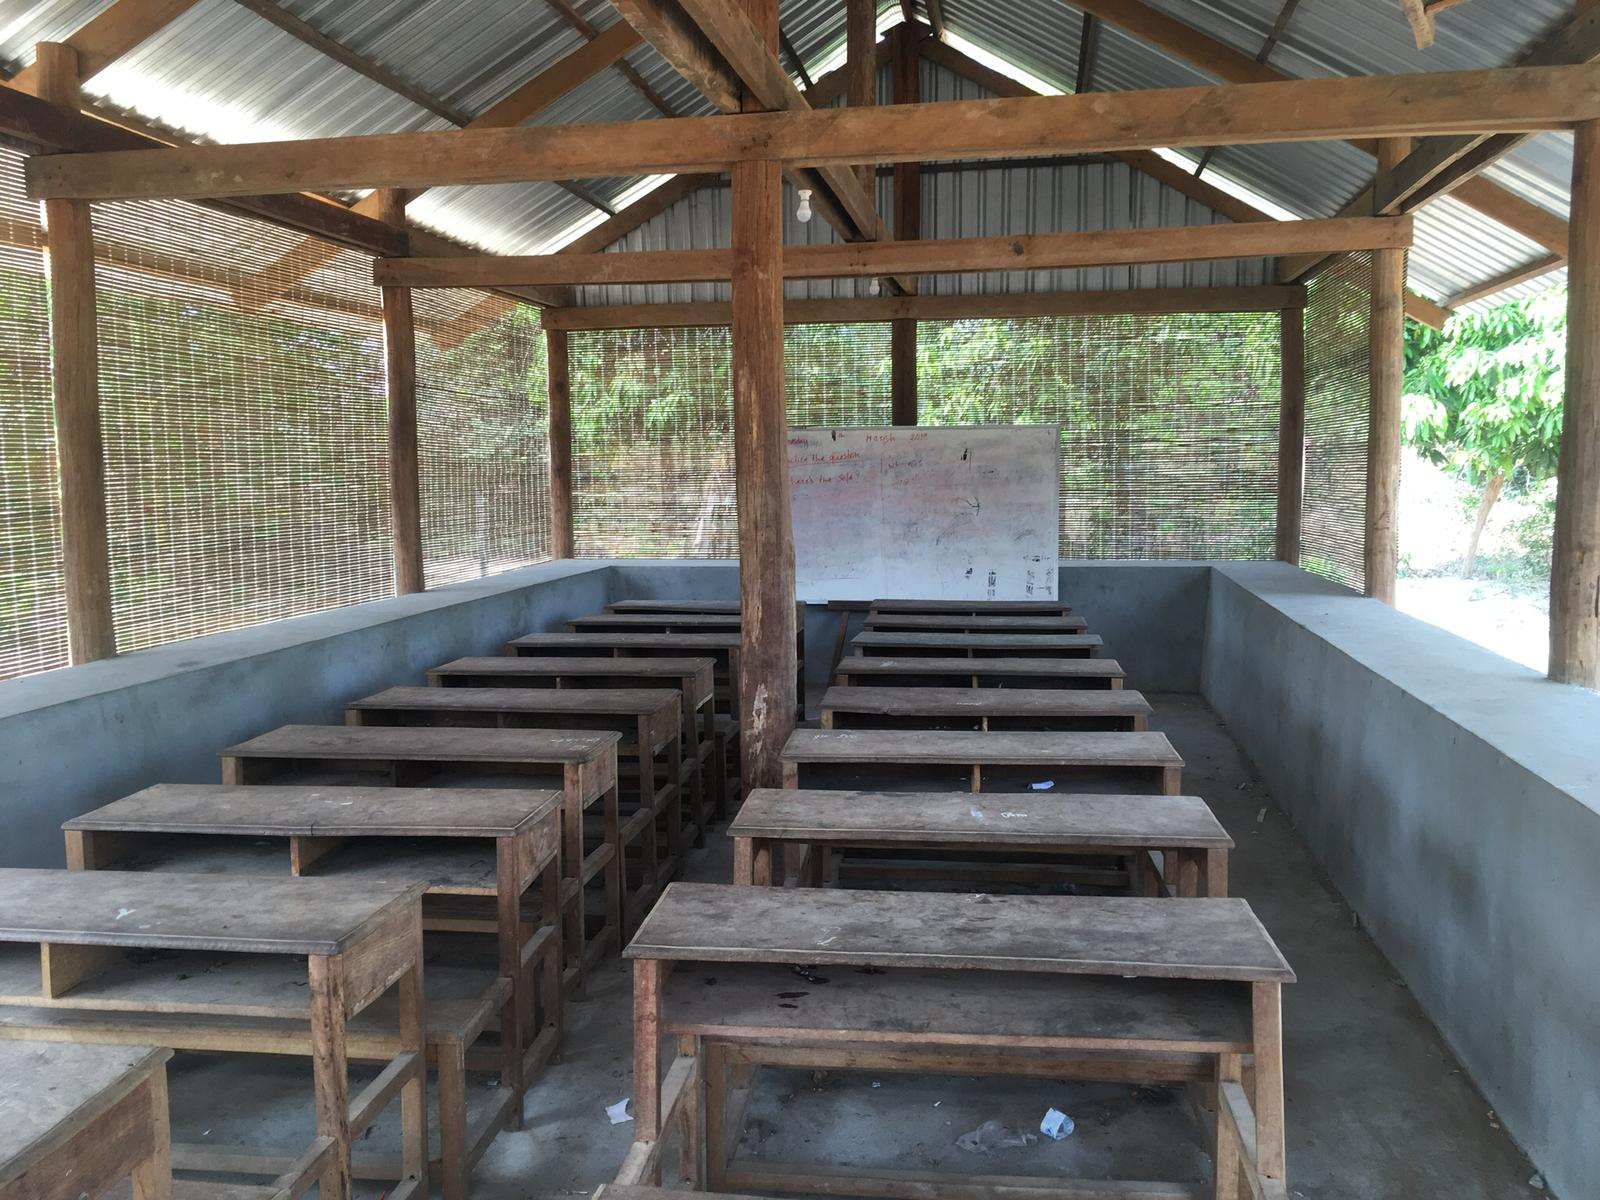 Affordable-Classroom-Construction-in-Cambodia-2